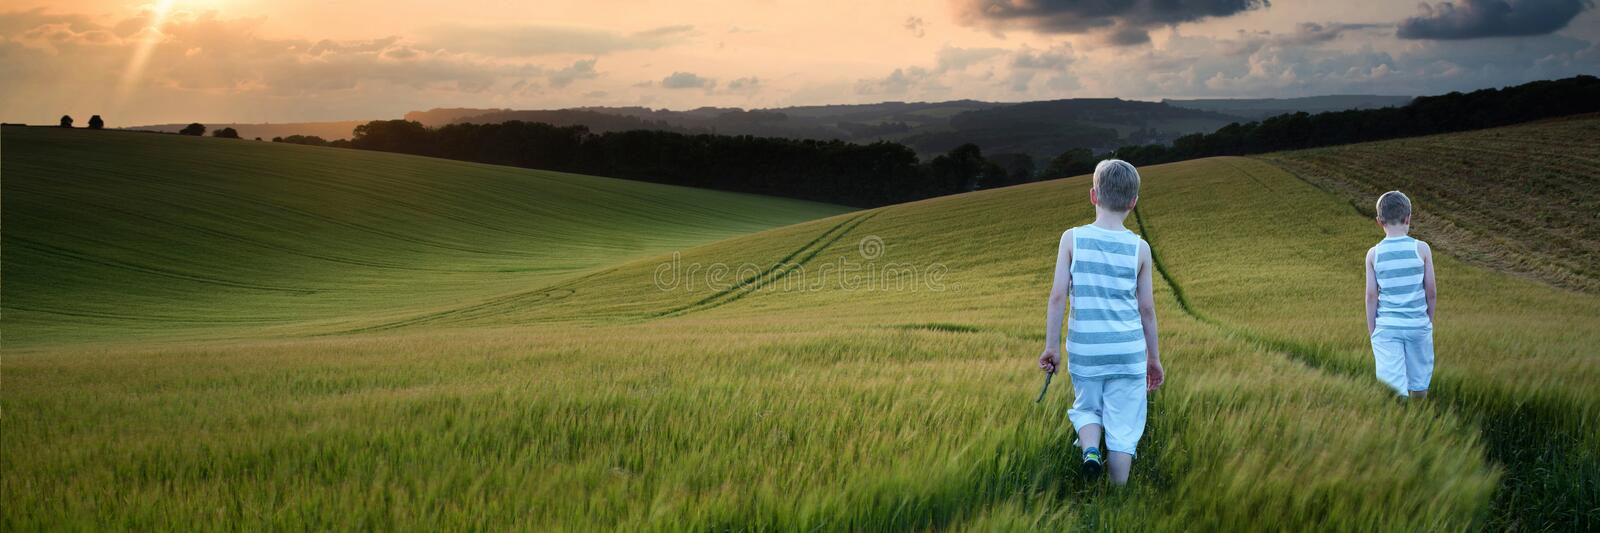 Concept landscape young boys walking through field at sunset in stock photos